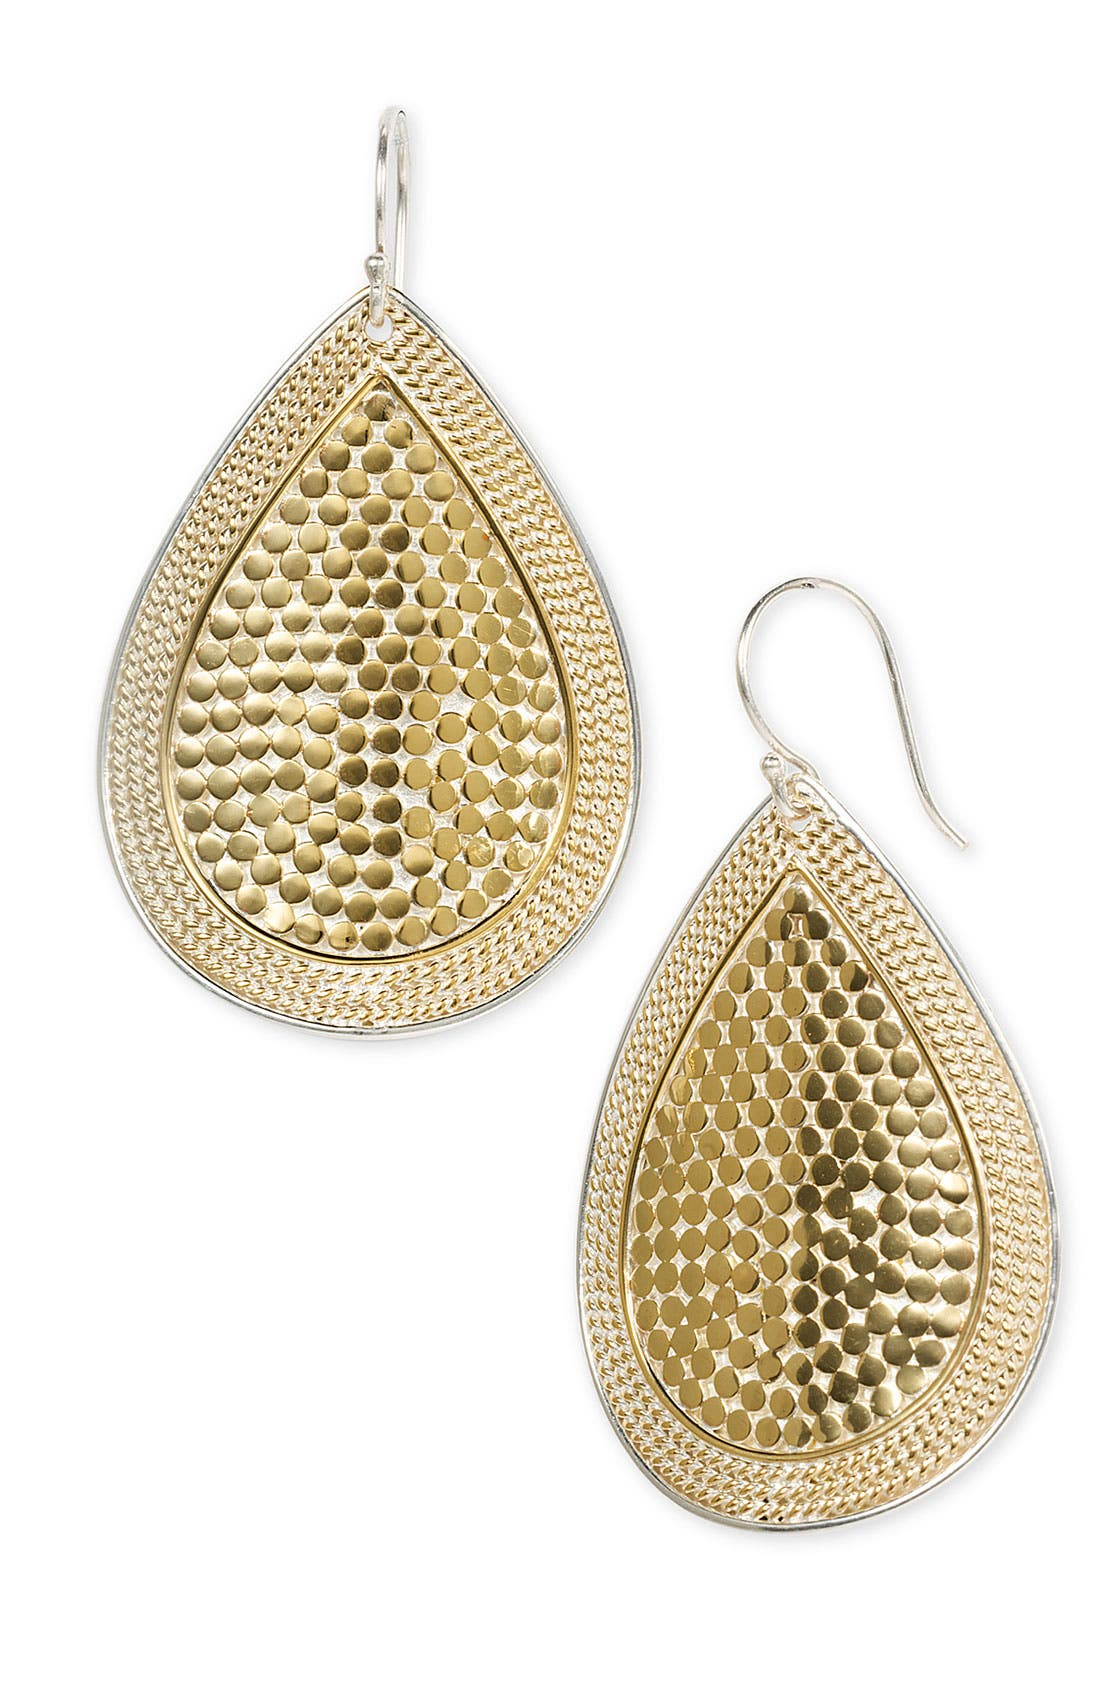 Main Image - Anna Beck 'Gili' Large Drop Earrings